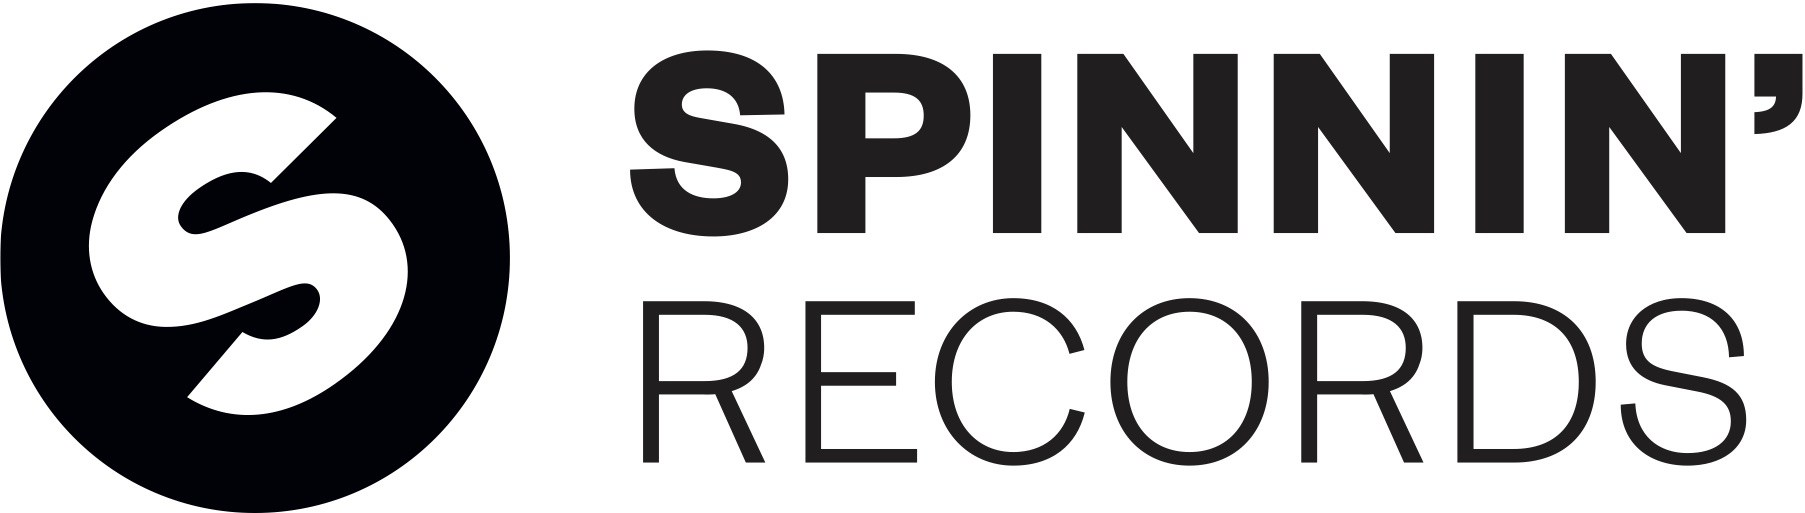 Spinnin Records Talent Pool